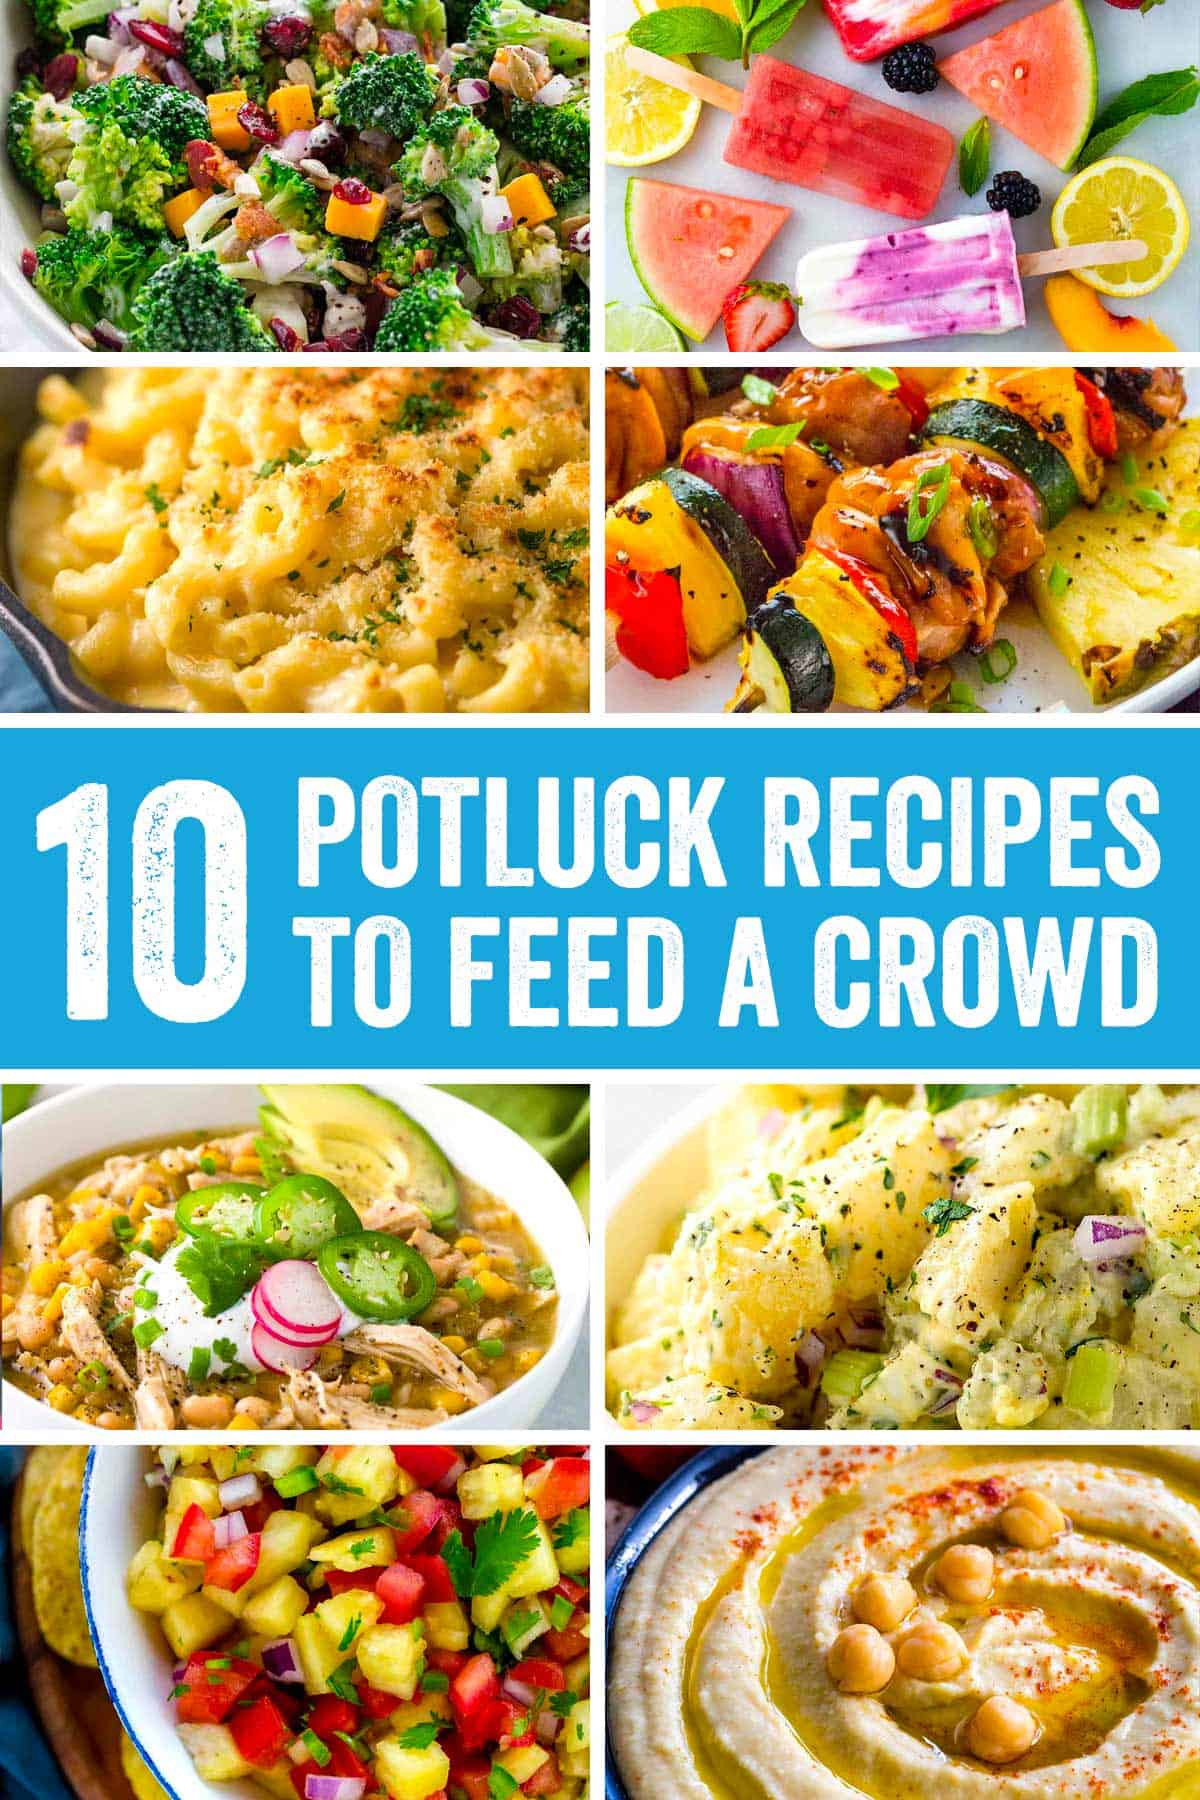 Potluck Side Dishes For Summer  Potluck Recipes to Feed A Crowd